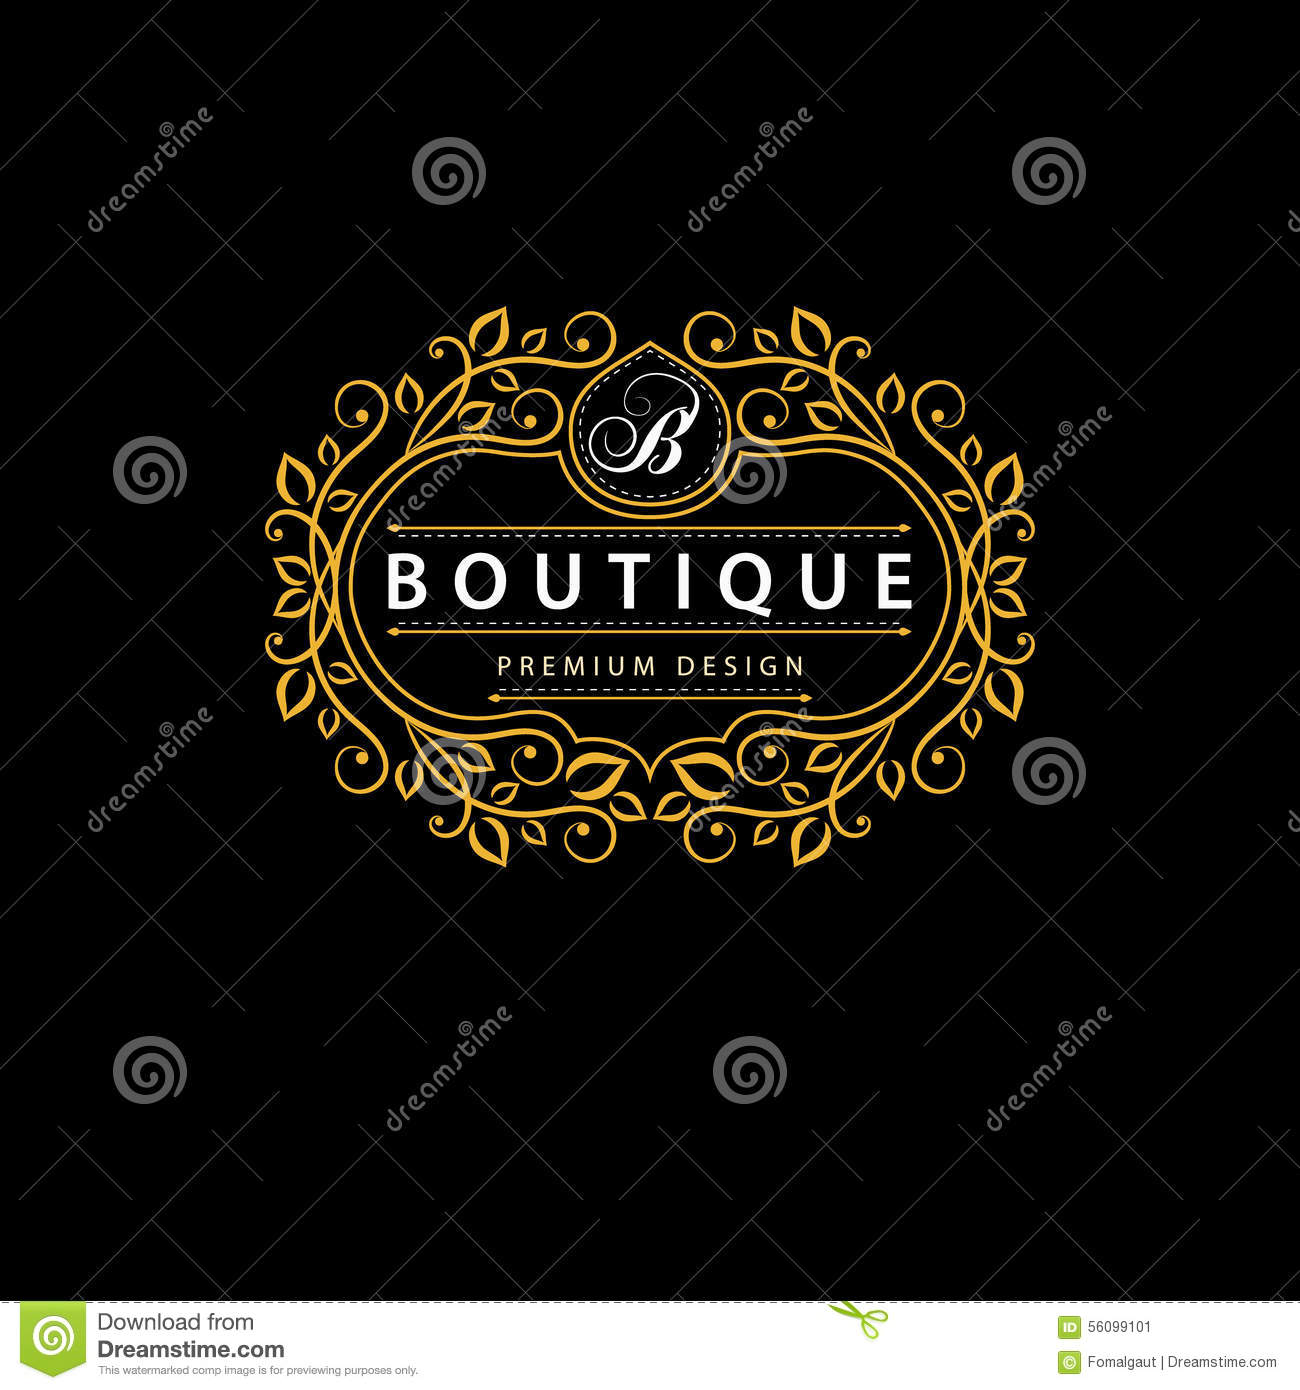 business sign templates free